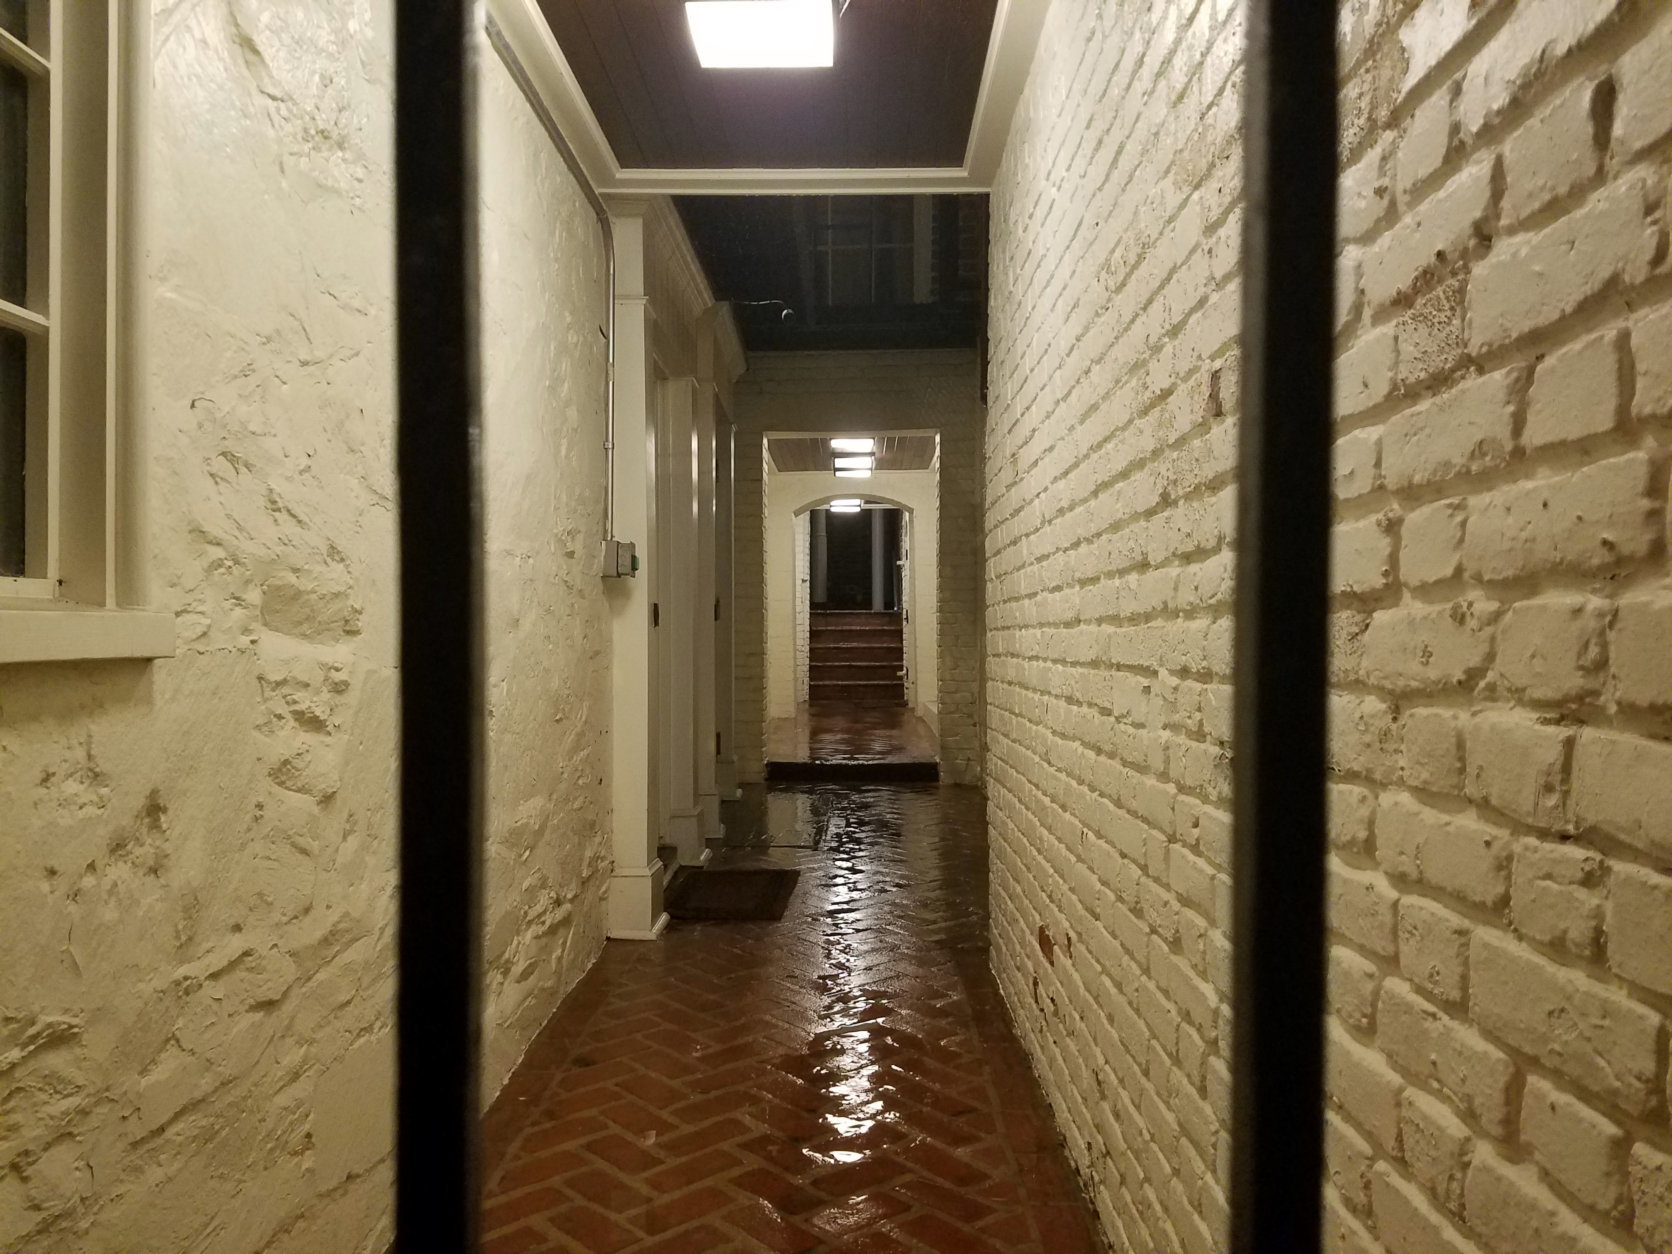 One of Halcyon House's alleyways. (WTOP/Will Vitka)